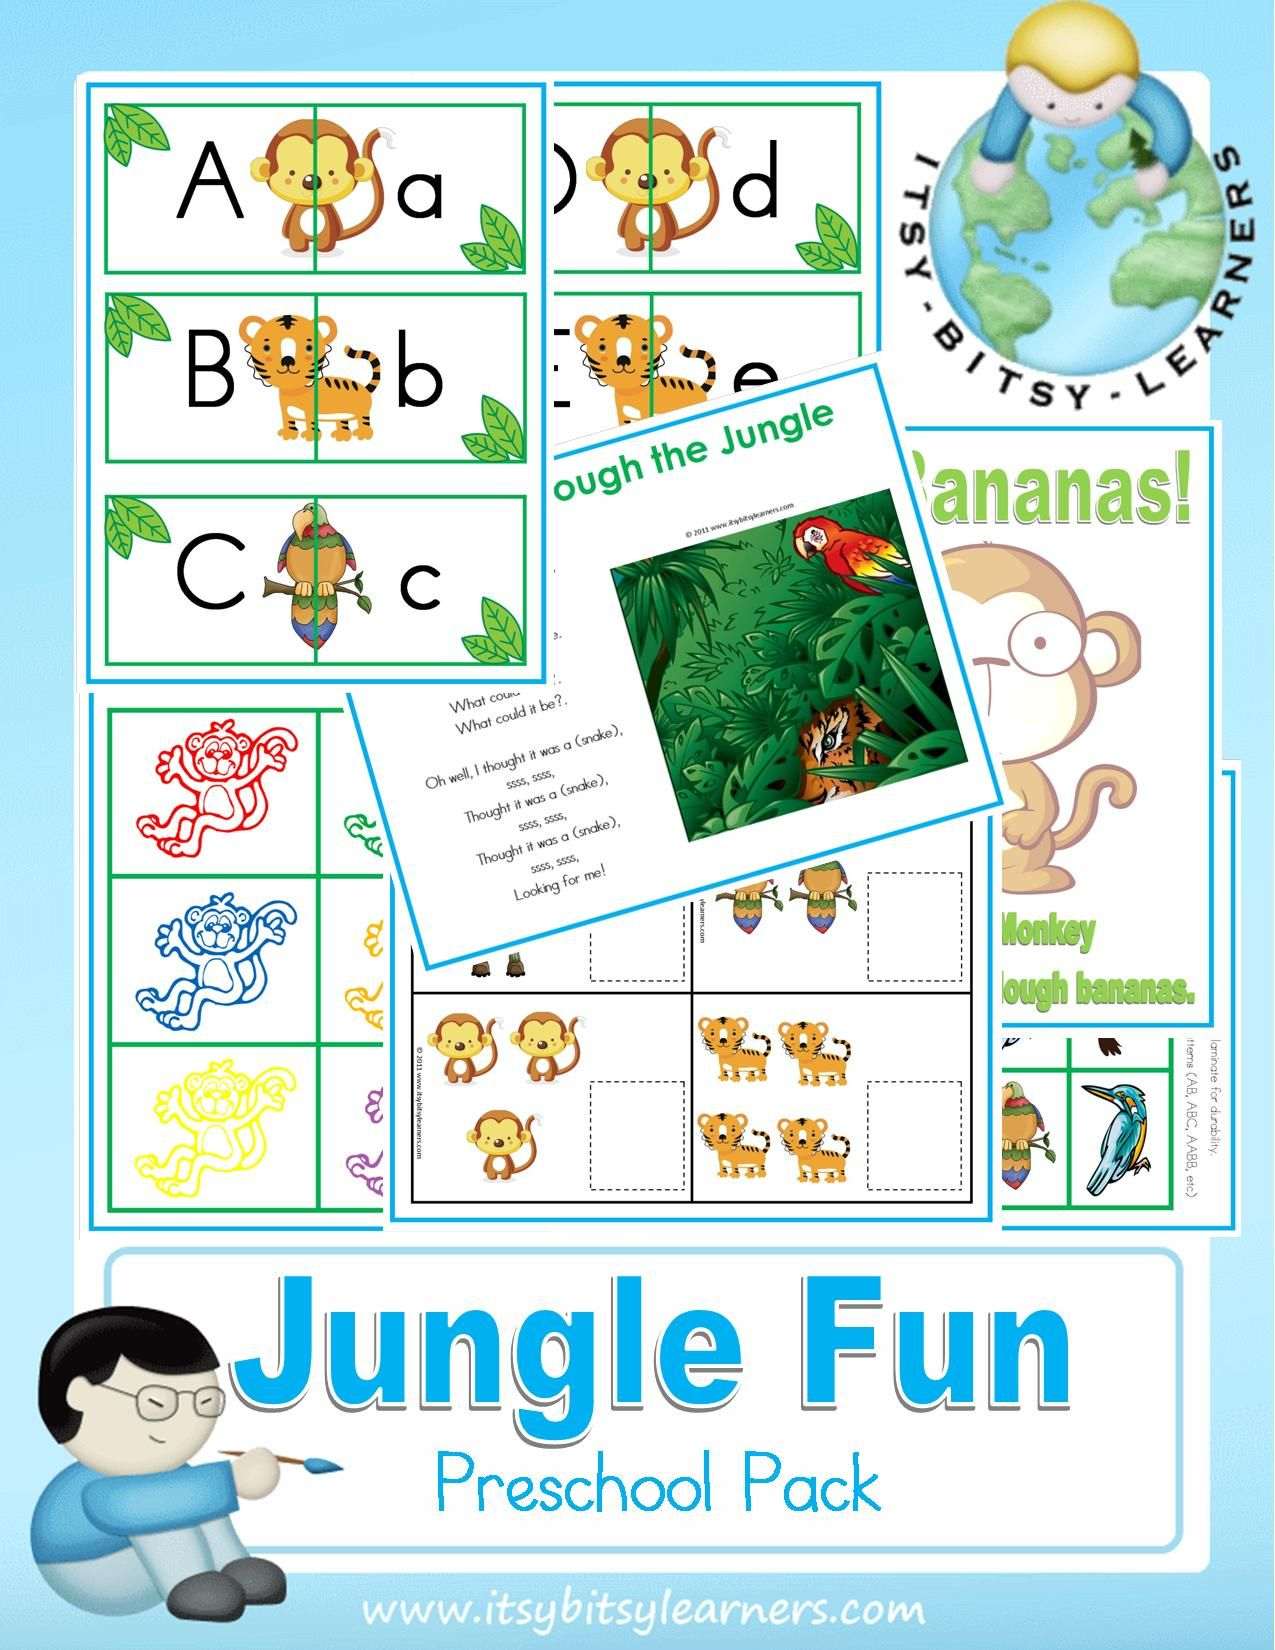 Free preschool/kindergarten printable packs including cut/paste ...